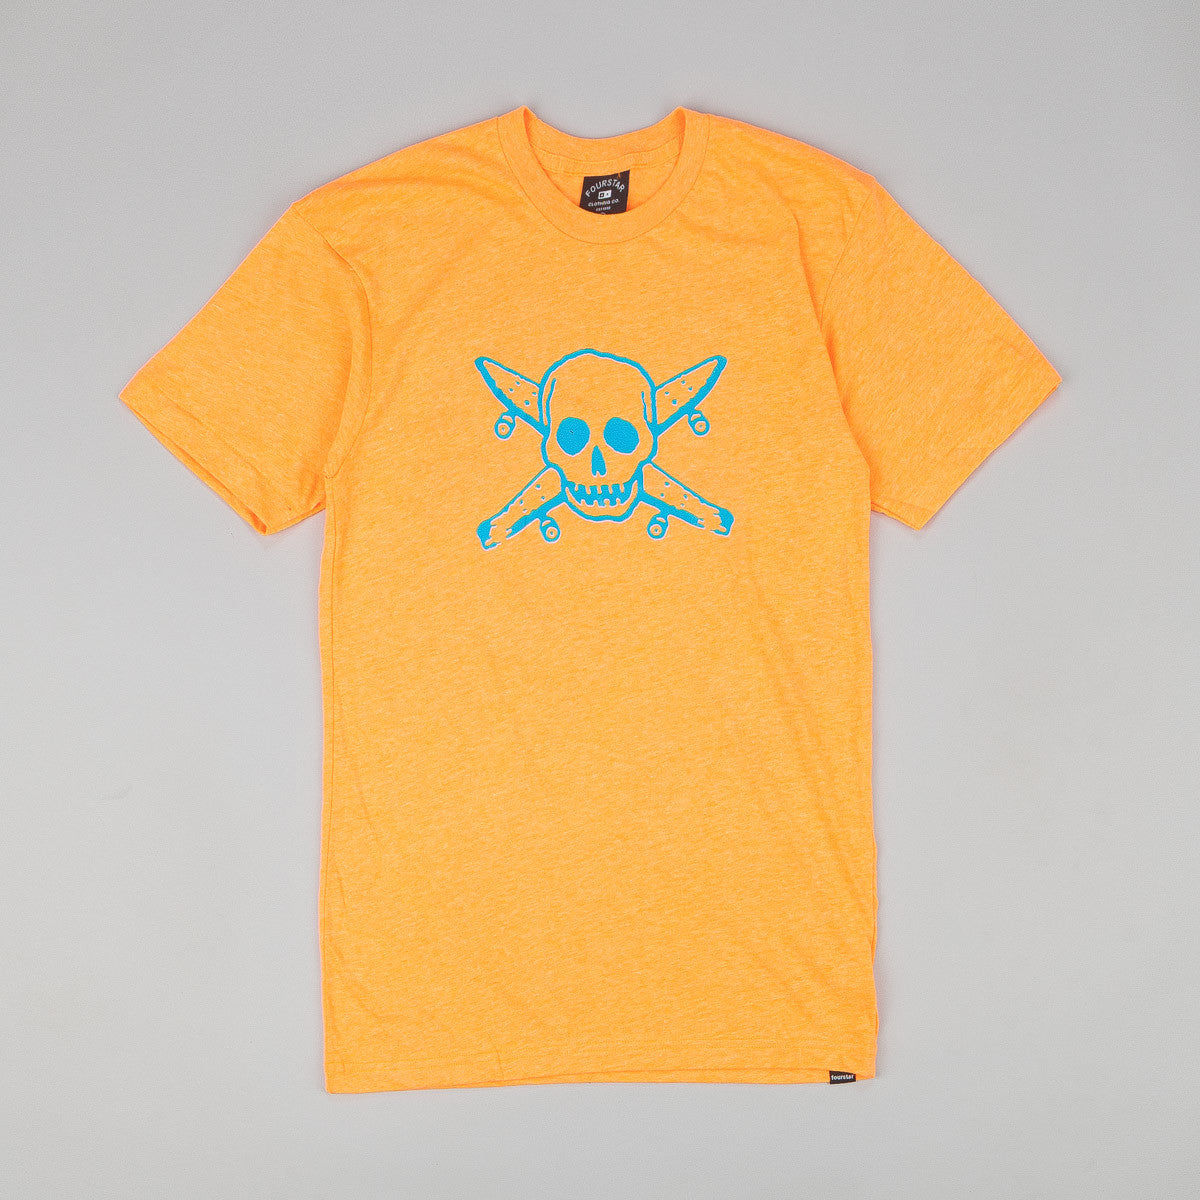 Fourstar Neon Pirate T Shirt - Orange